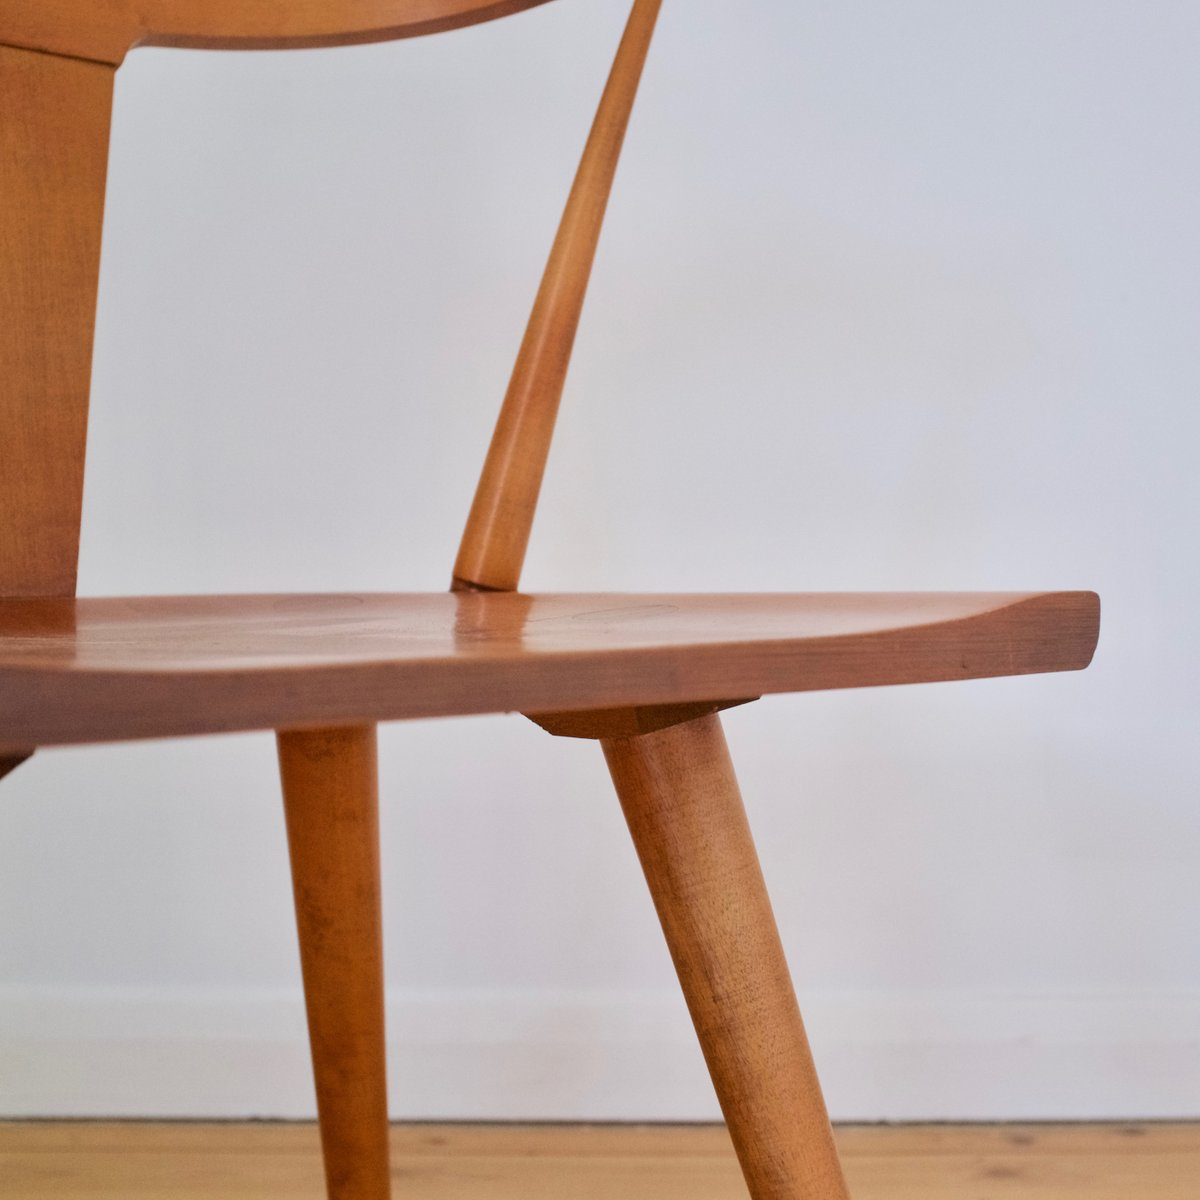 Planner Groups Chairs By Paul Mccobb For Winchendon Furniture Company 1950s Set Of 2 For Sale